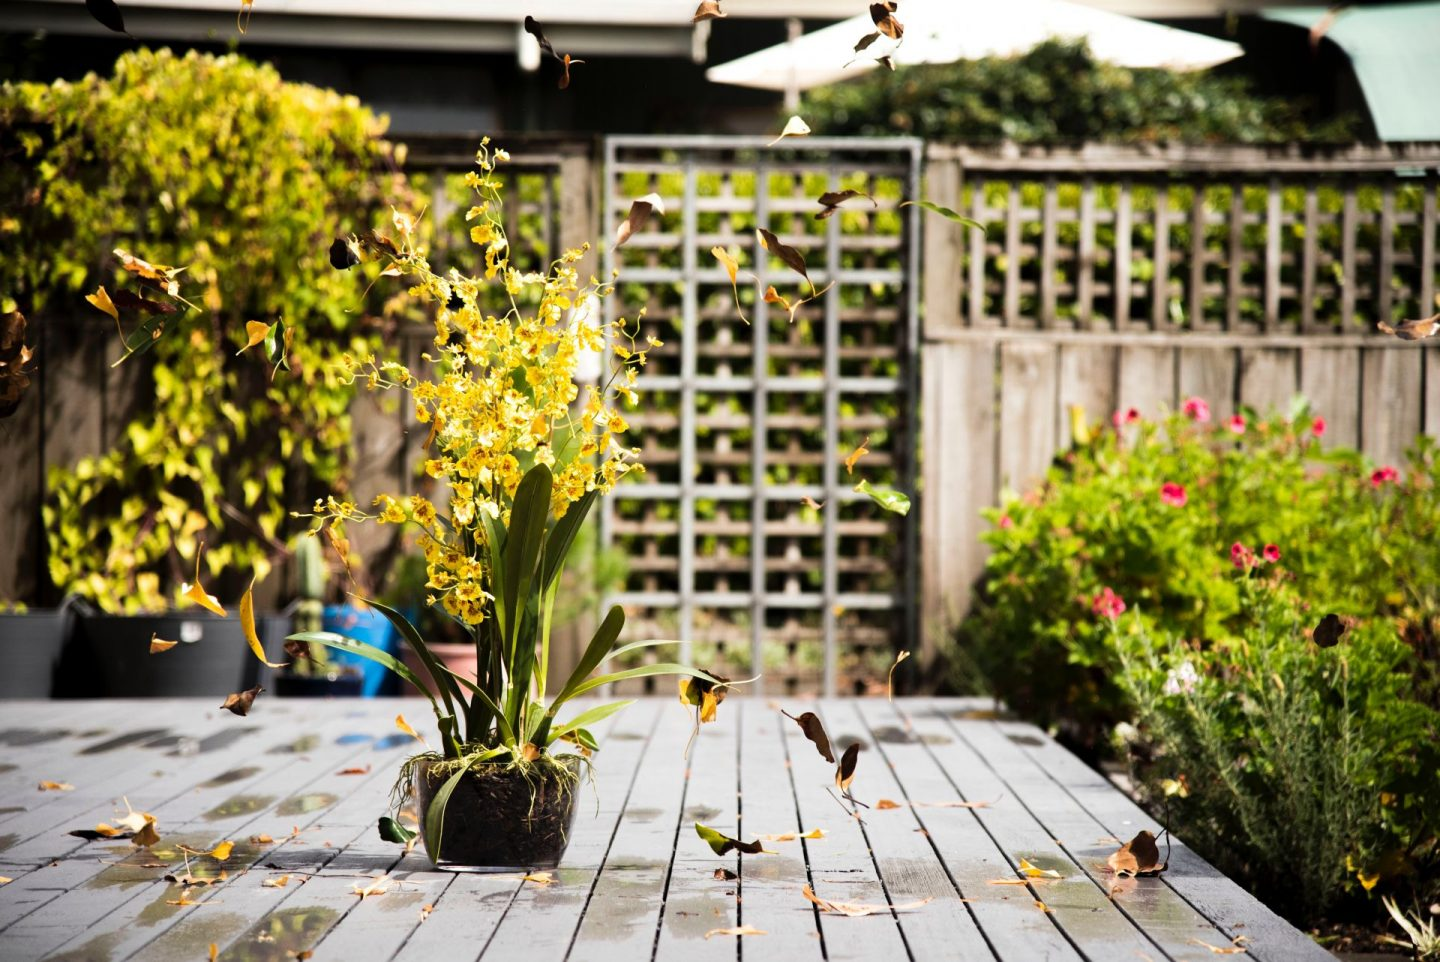 , Planning a Garden That's Always Ready to Enjoy All Year Round